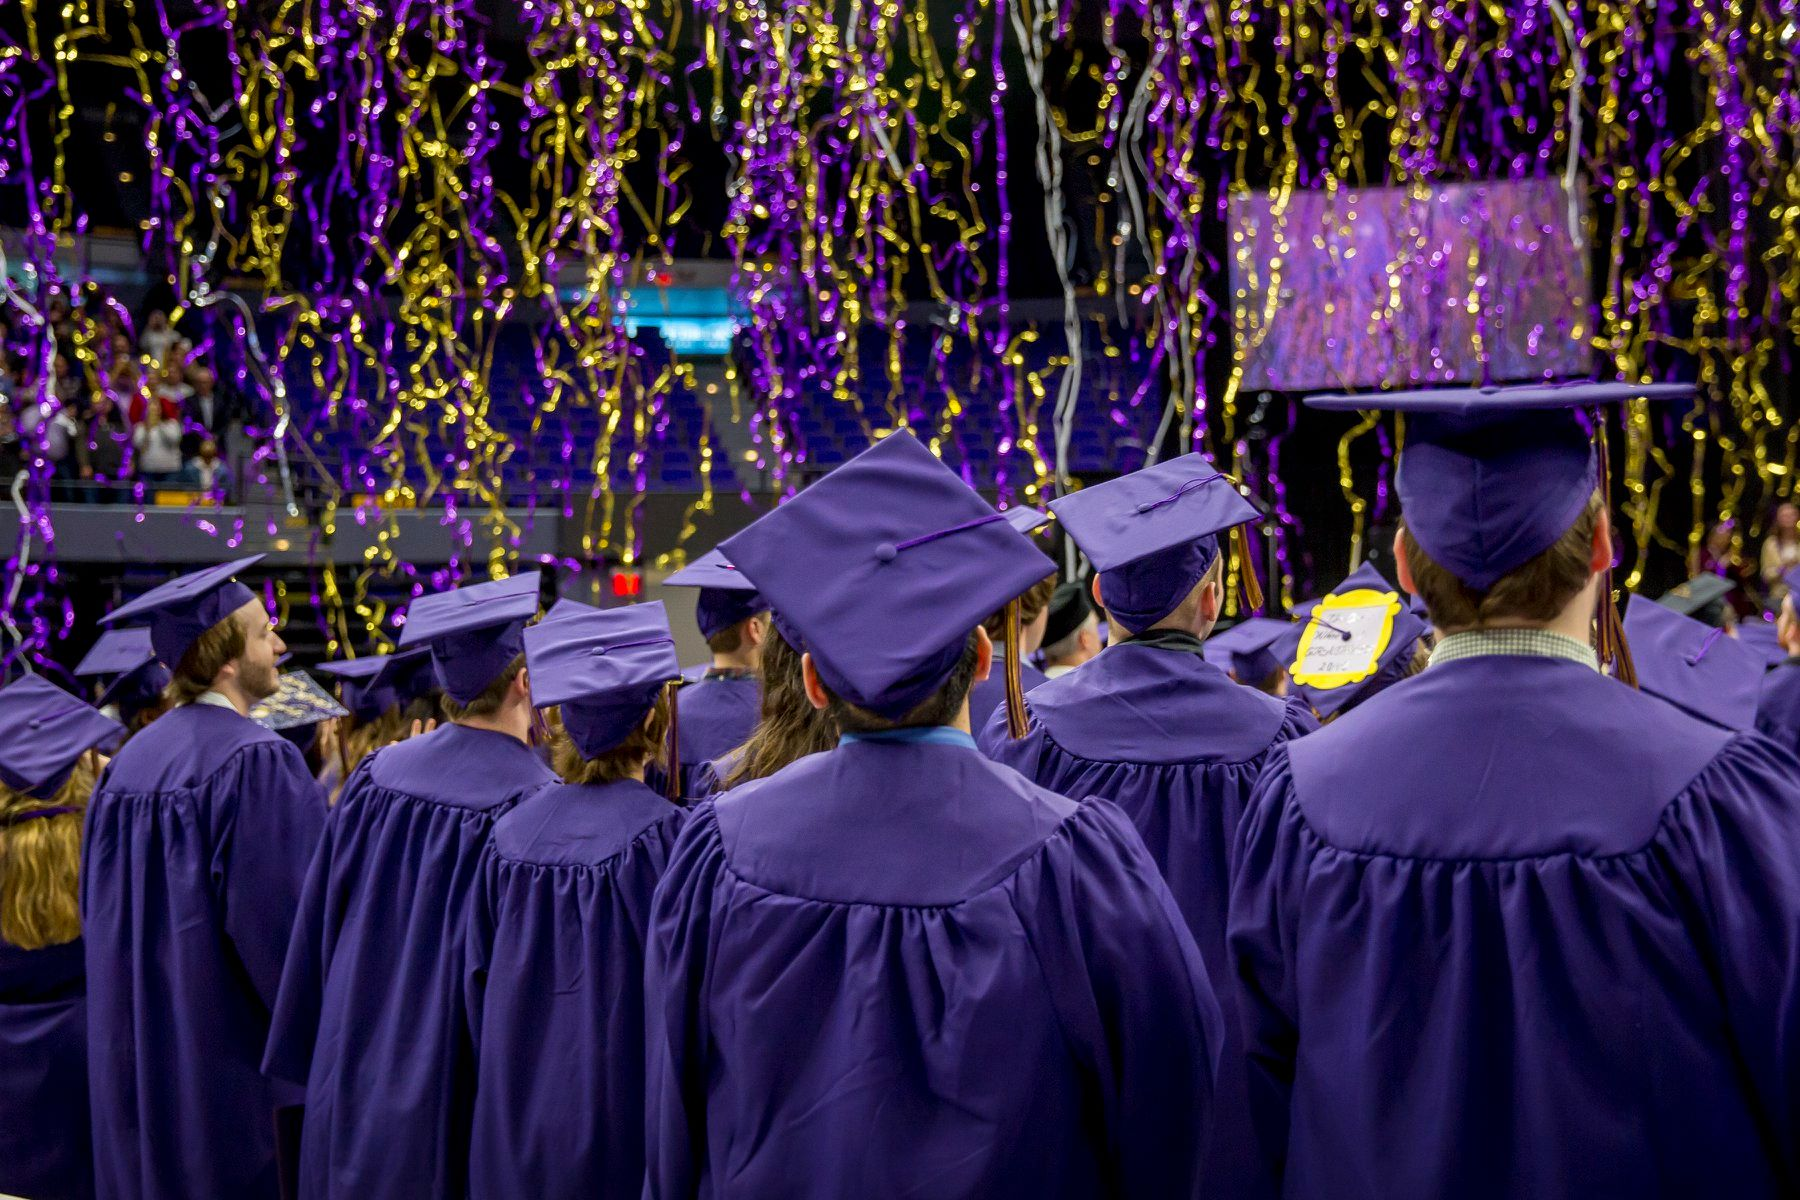 Graduates in caps and gowns, purple and gold streamers